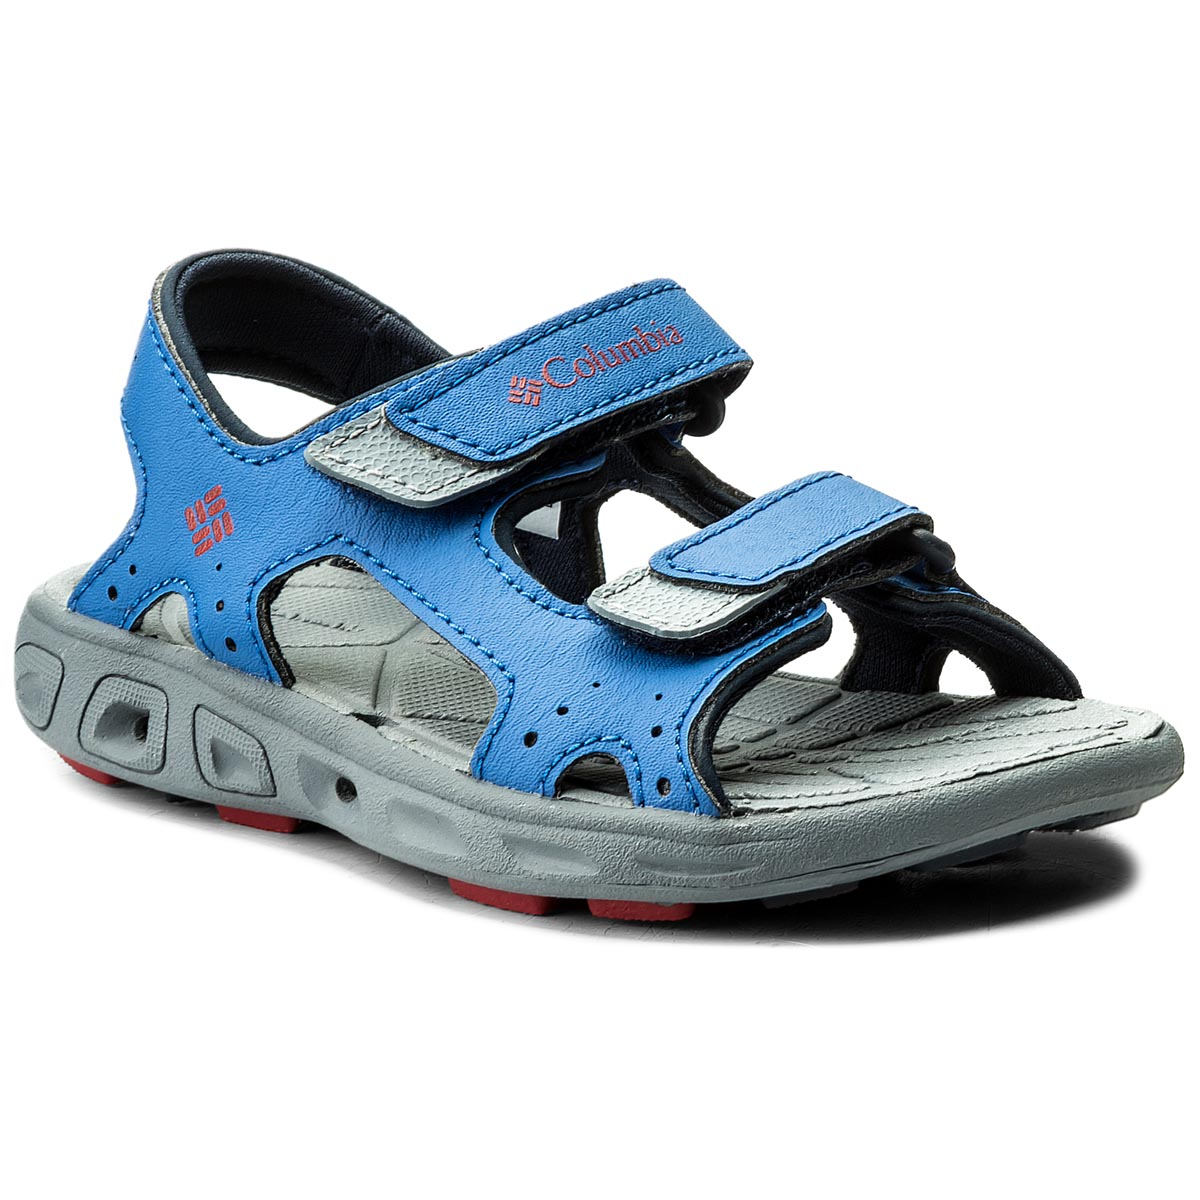 Sandale COLUMBIA - Childrens Techsun Vent BC4566 Stormy Blue/Mountain Red 426